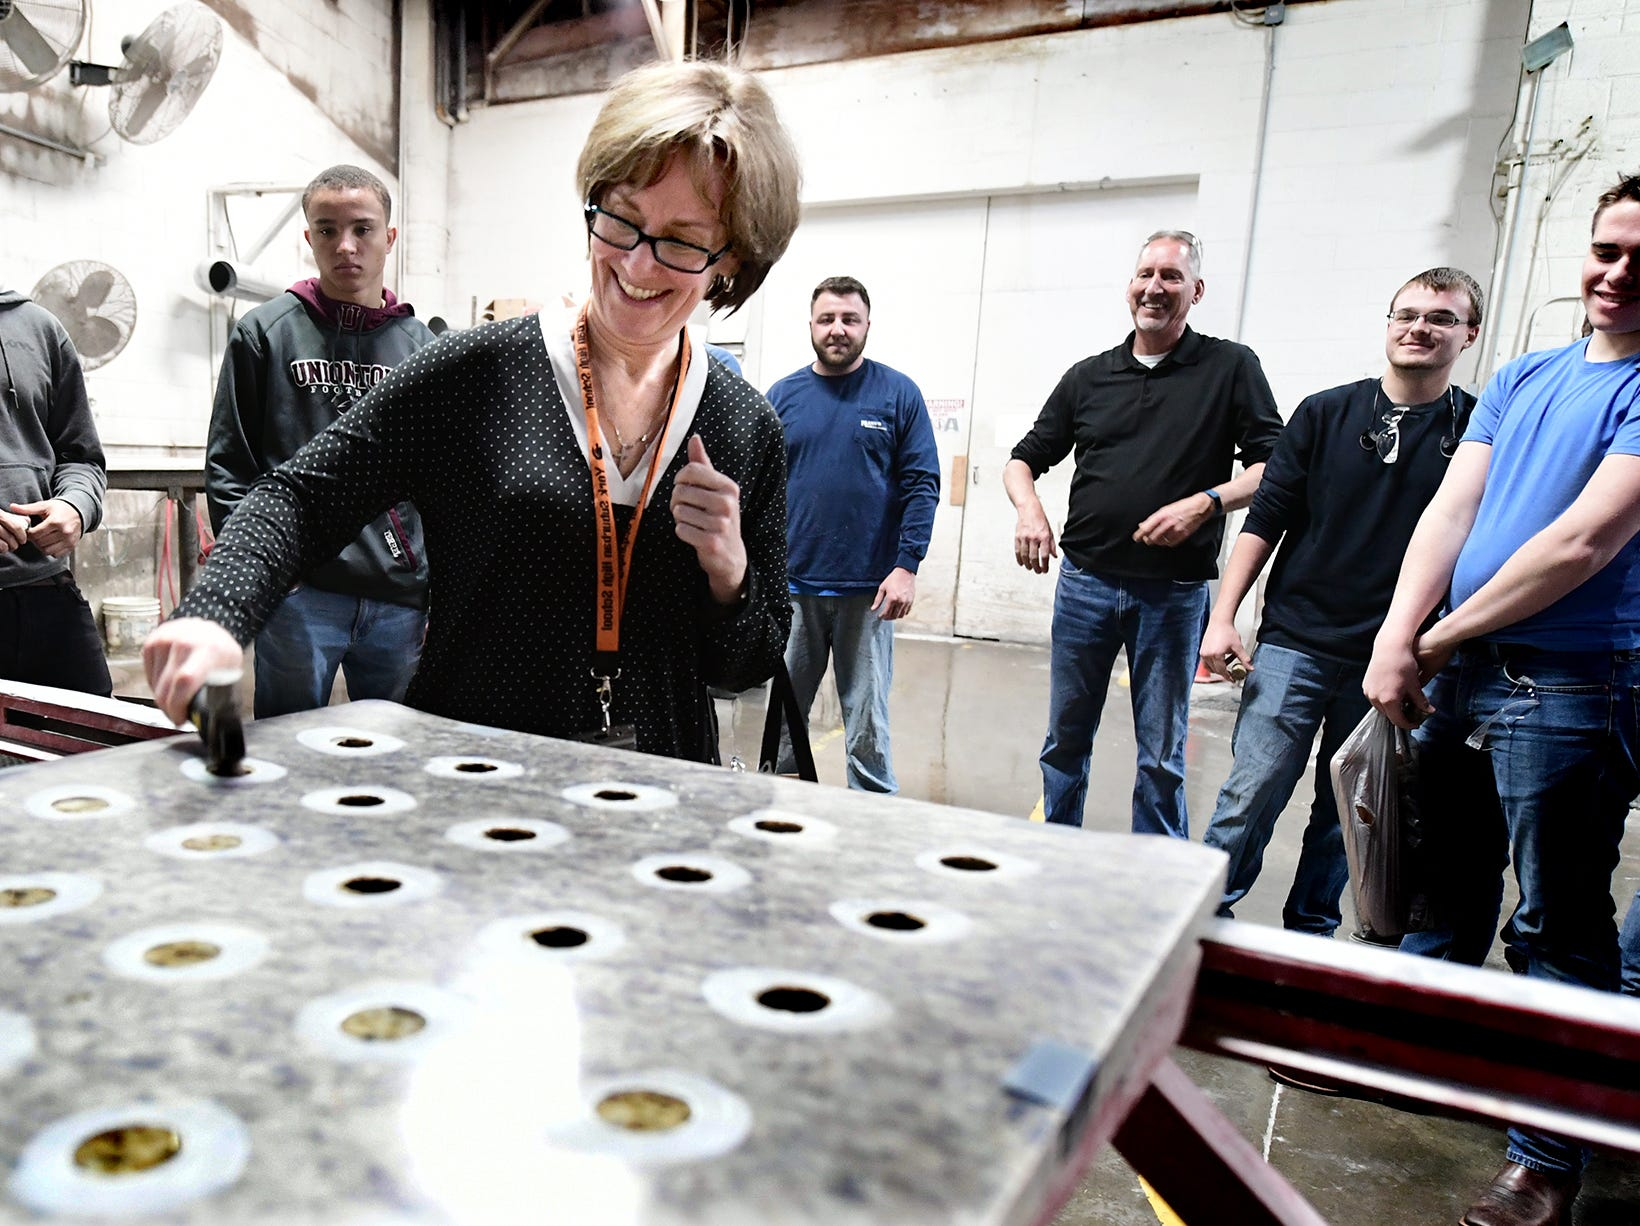 York Suburban High School guidance counselor Karen Forrer punches a spigot hole in a granite slab at Frank's Marble & Granite, in Red Lion, during the York Builders Association 2nd Annual Construction Career Day Monday, April 8, 2019. The goal of the program is to raise student-awareness about local career opportunities in the construction field. Association members host the students. The association has planned similar events at various companies through April 17. Nine area high schools are participating in the program, according to the builders association. Bill Kalina photo